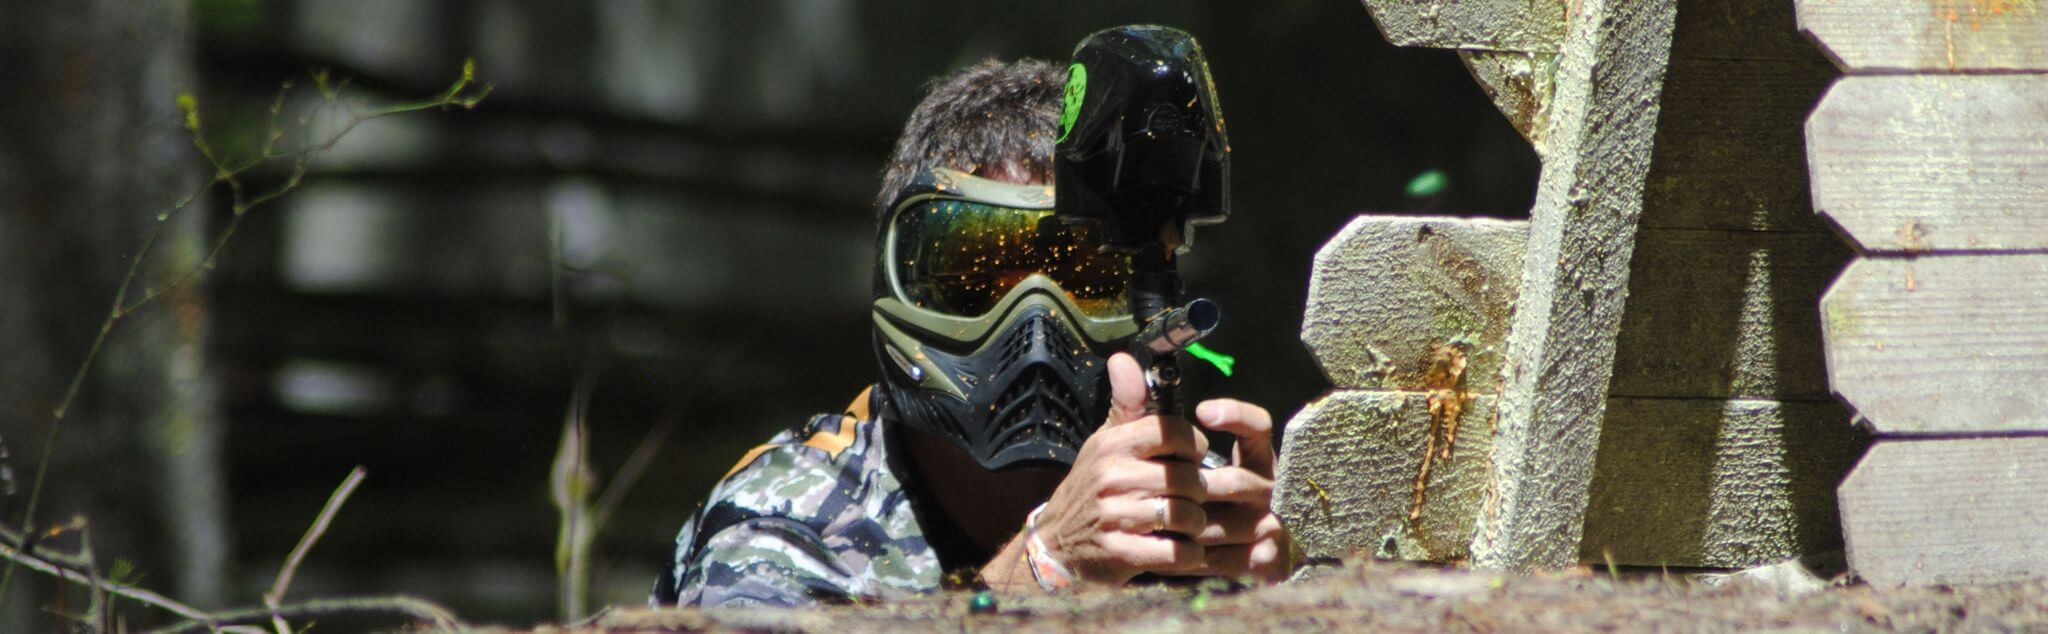 Paintball in Hertfordshire